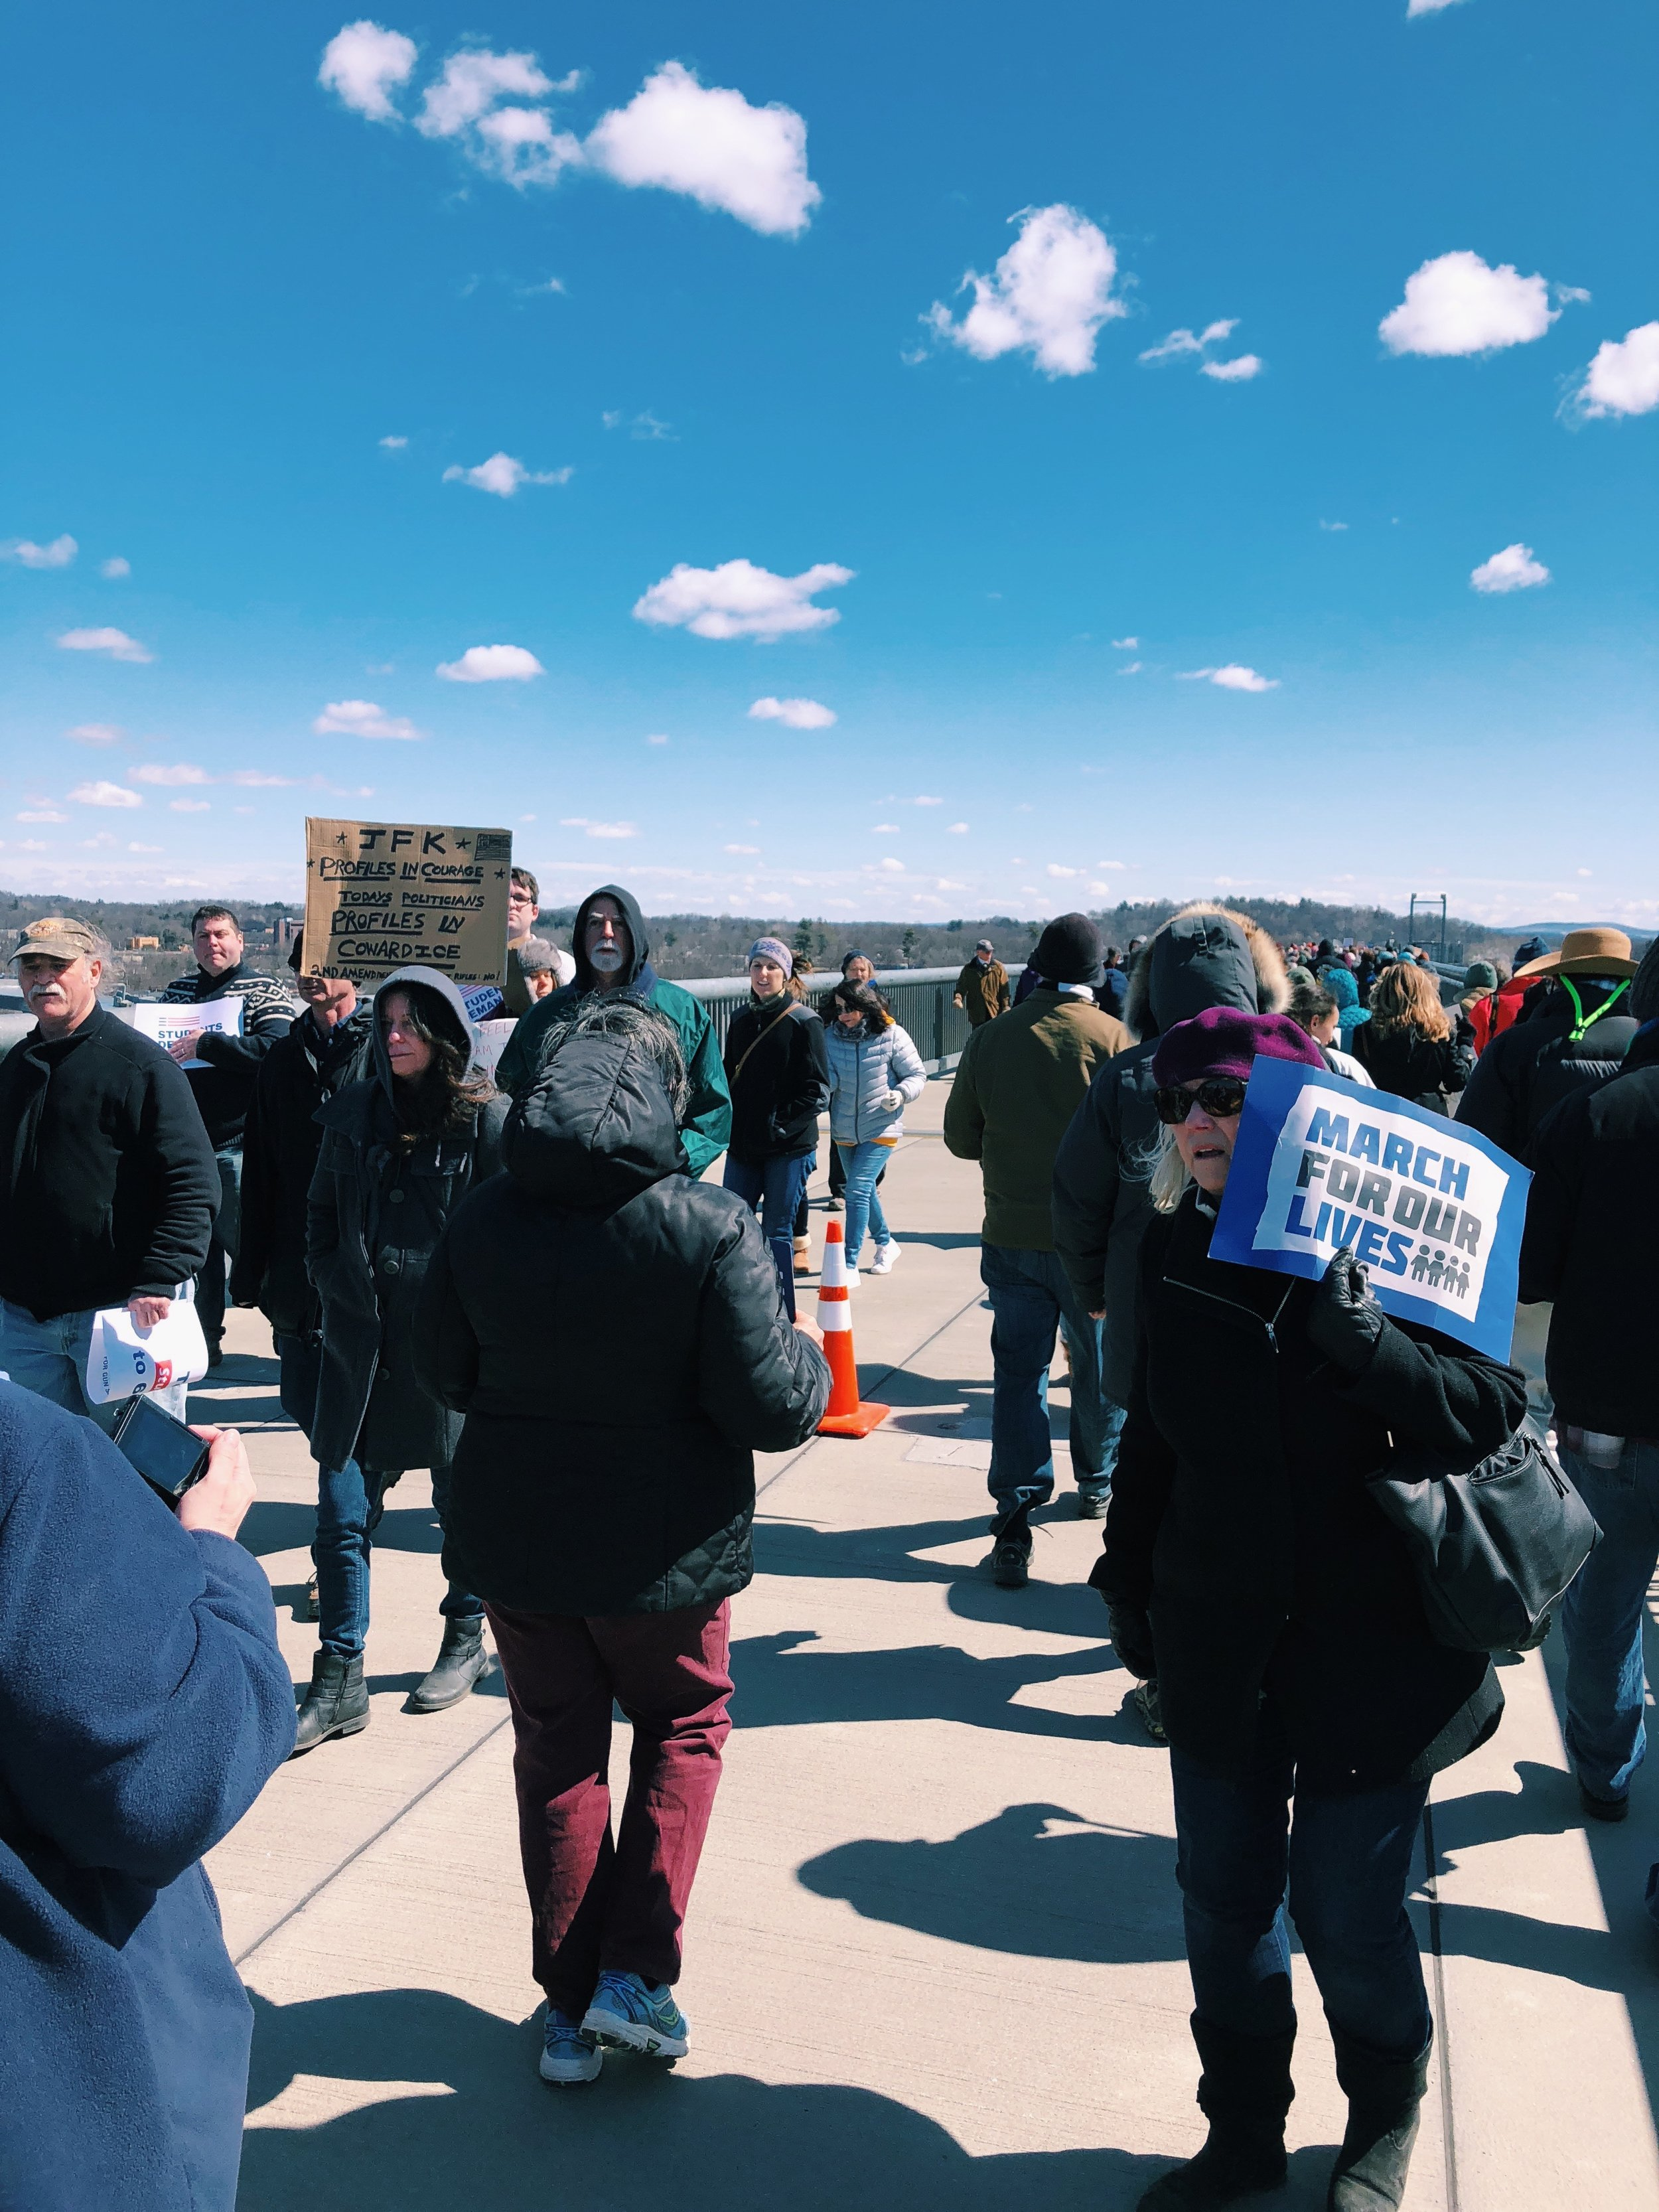 Nearly 8,000 marchers gather on the Walkway Over the Hudson State Park for Poughkeepsie's March for Our Lives. Photo Courtesy of Madison Vettorino.